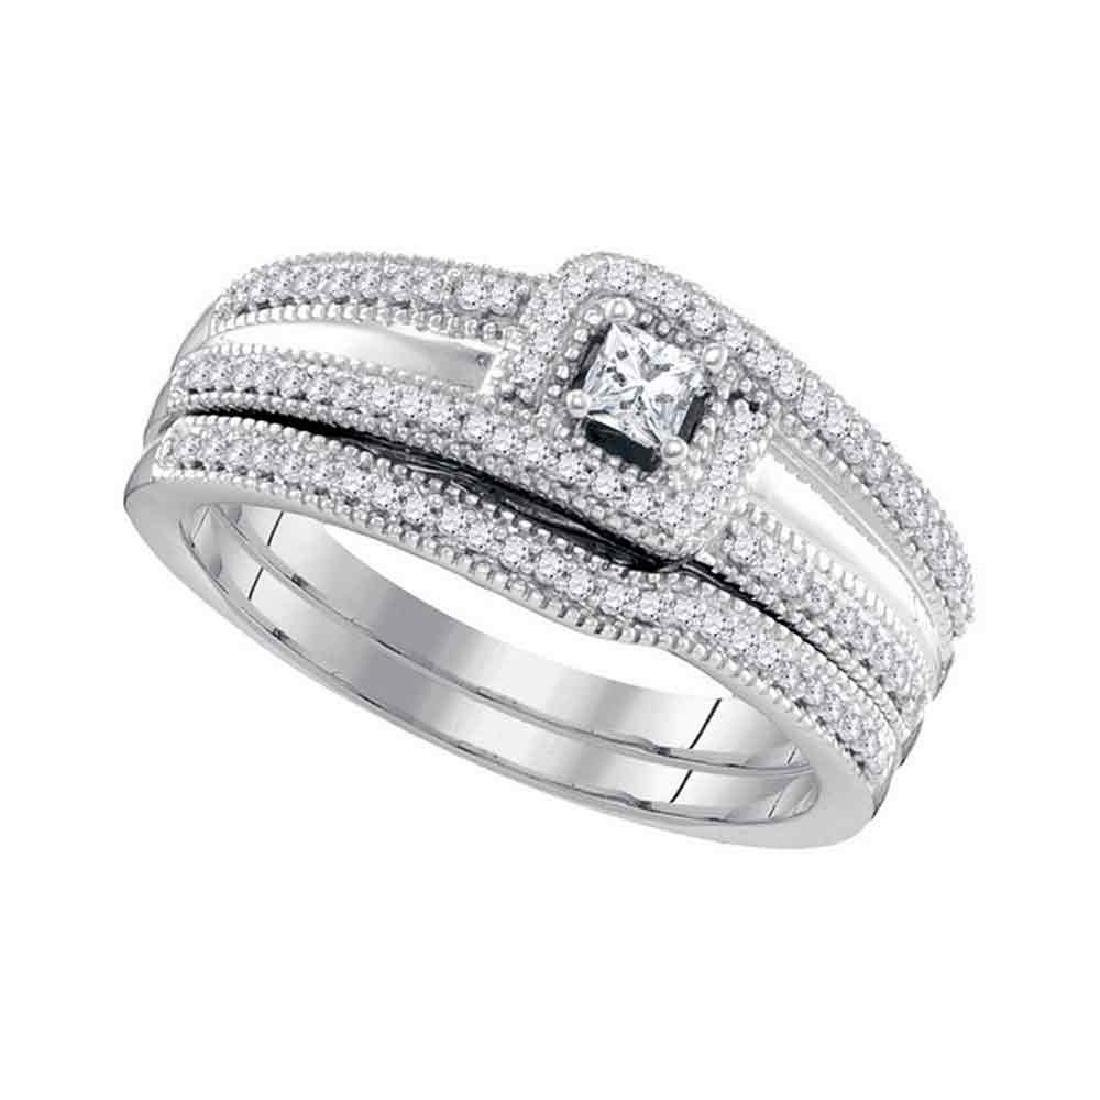 Princess Diamond Bridal Wedding Engagement Ring 10k